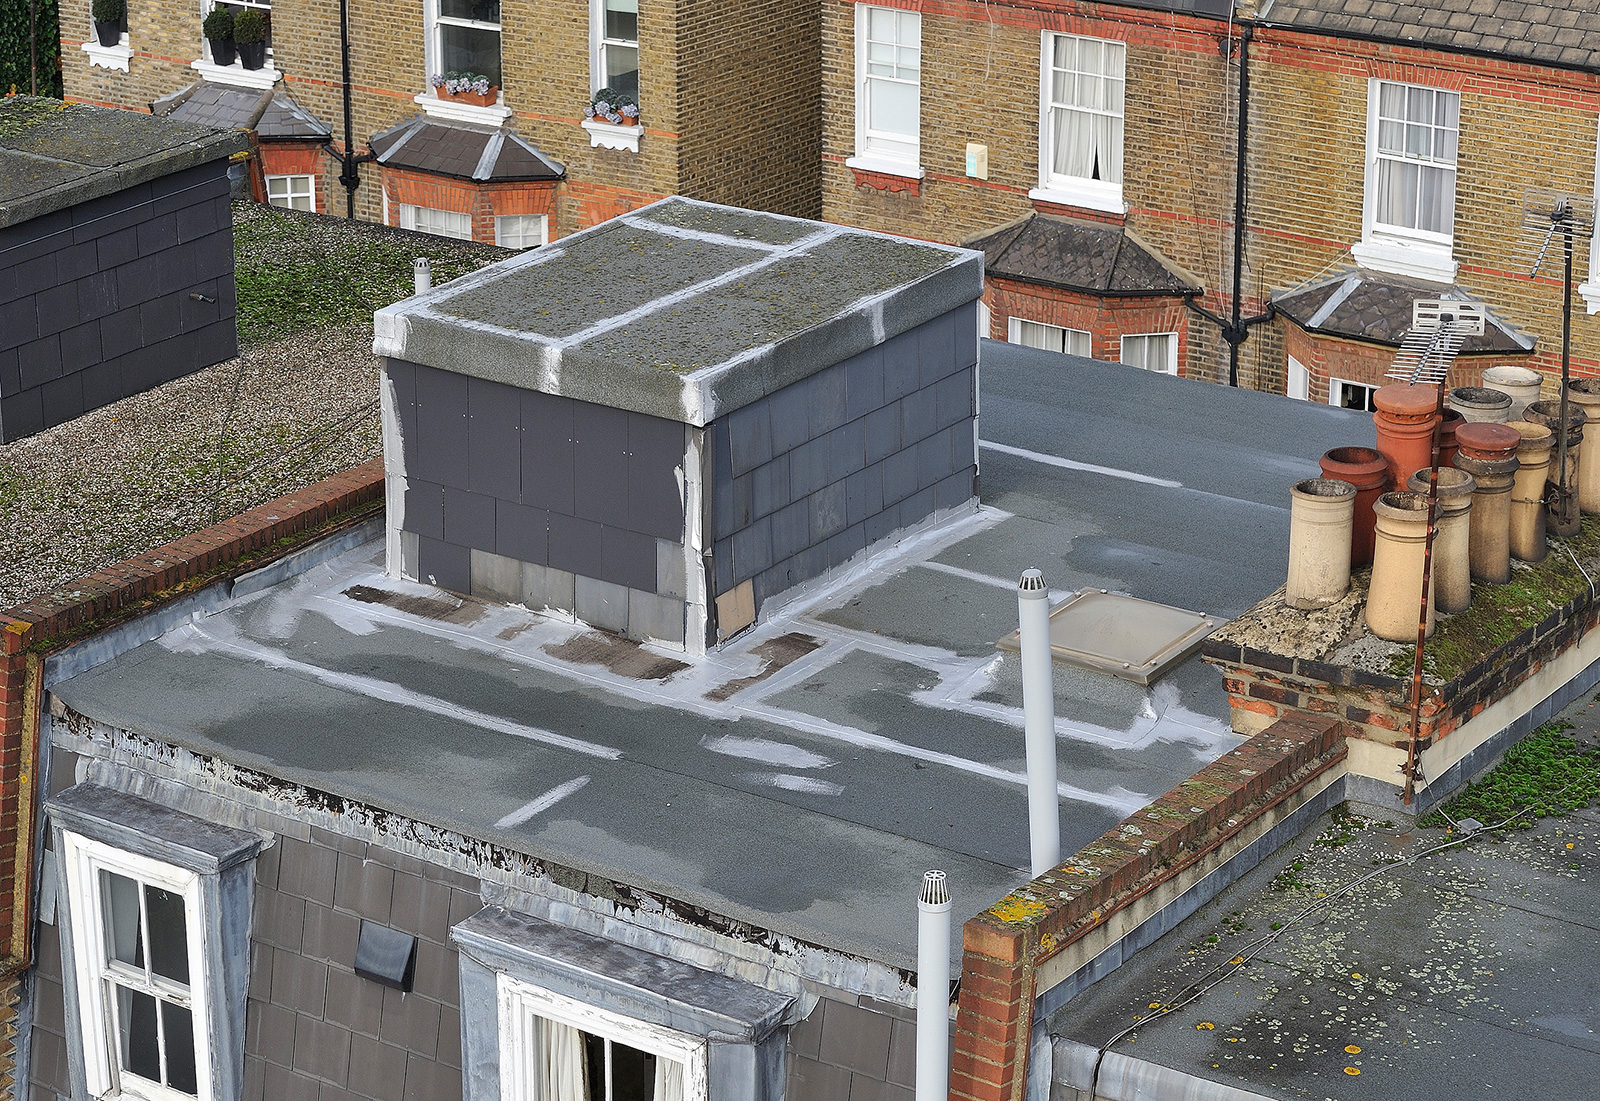 Poor maintence on a flat roof